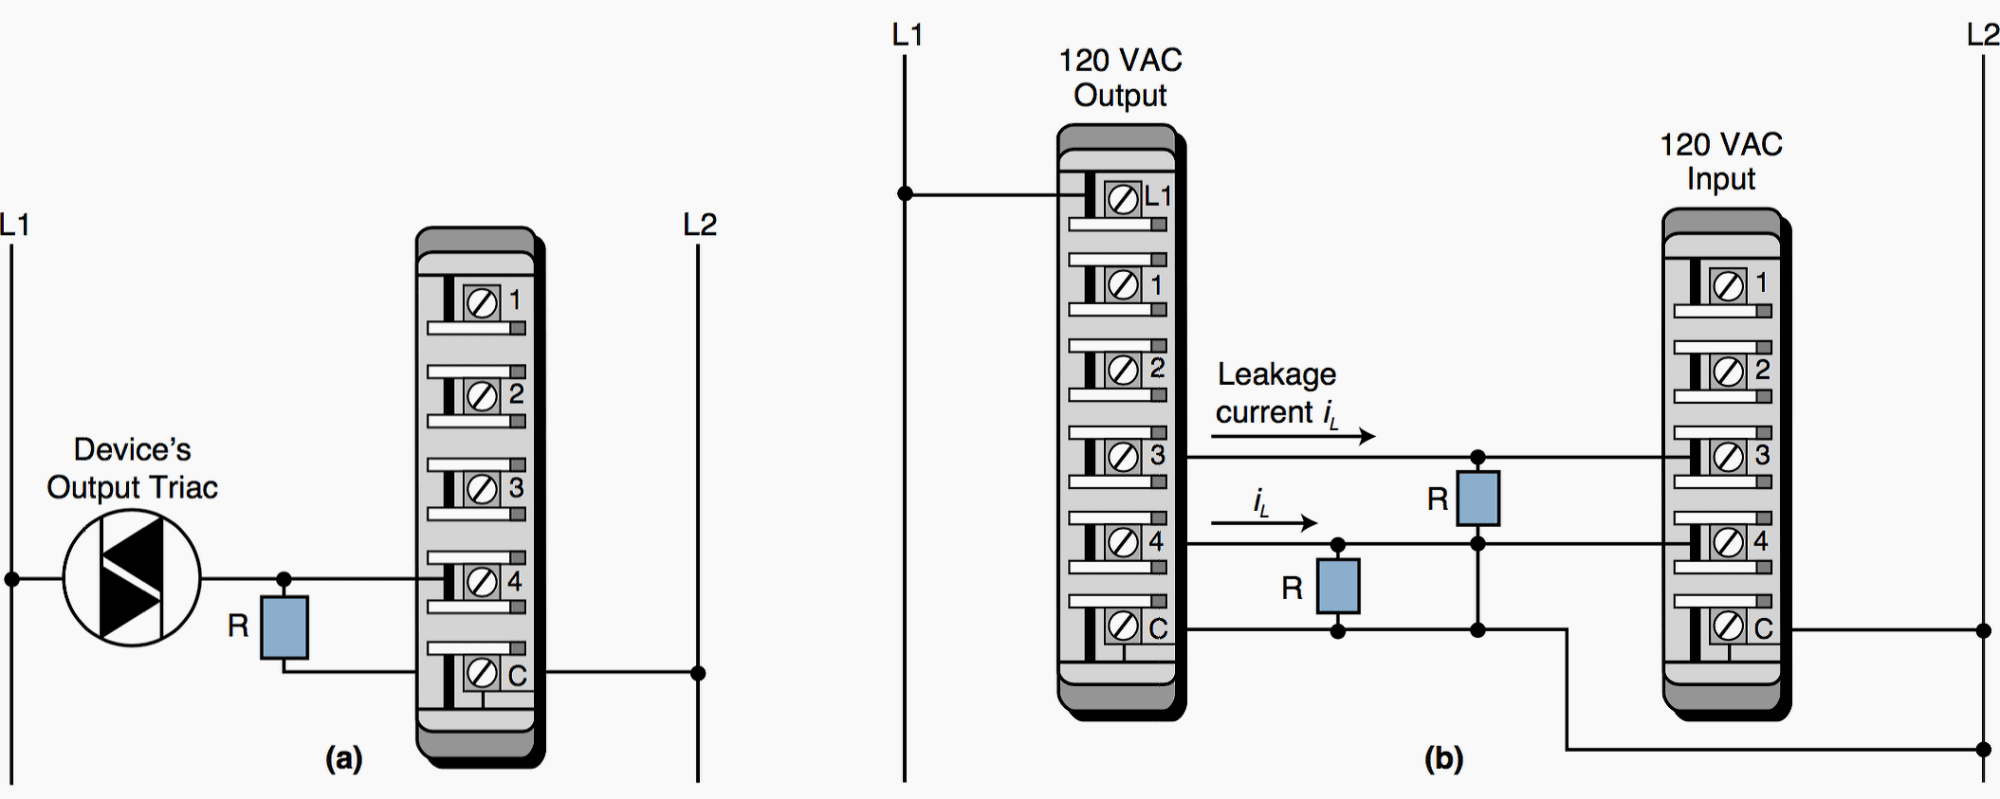 hight resolution of  a a connection for a leaky input device and b the connection